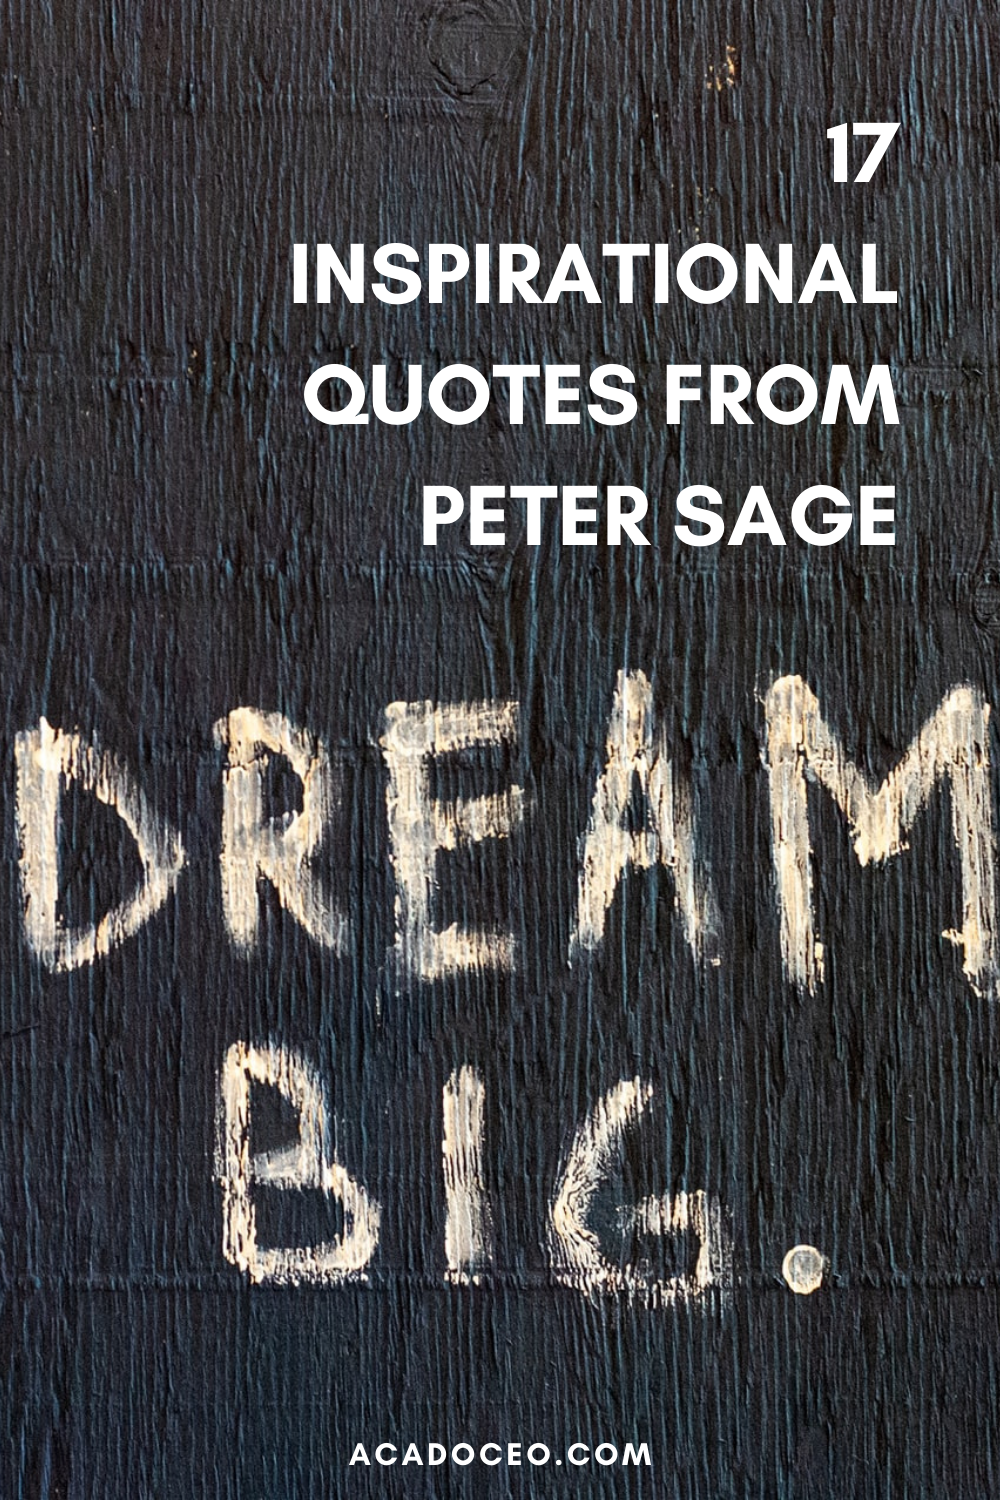 17 INSPIRATIONAL QUOTES FROM PETER SAGE